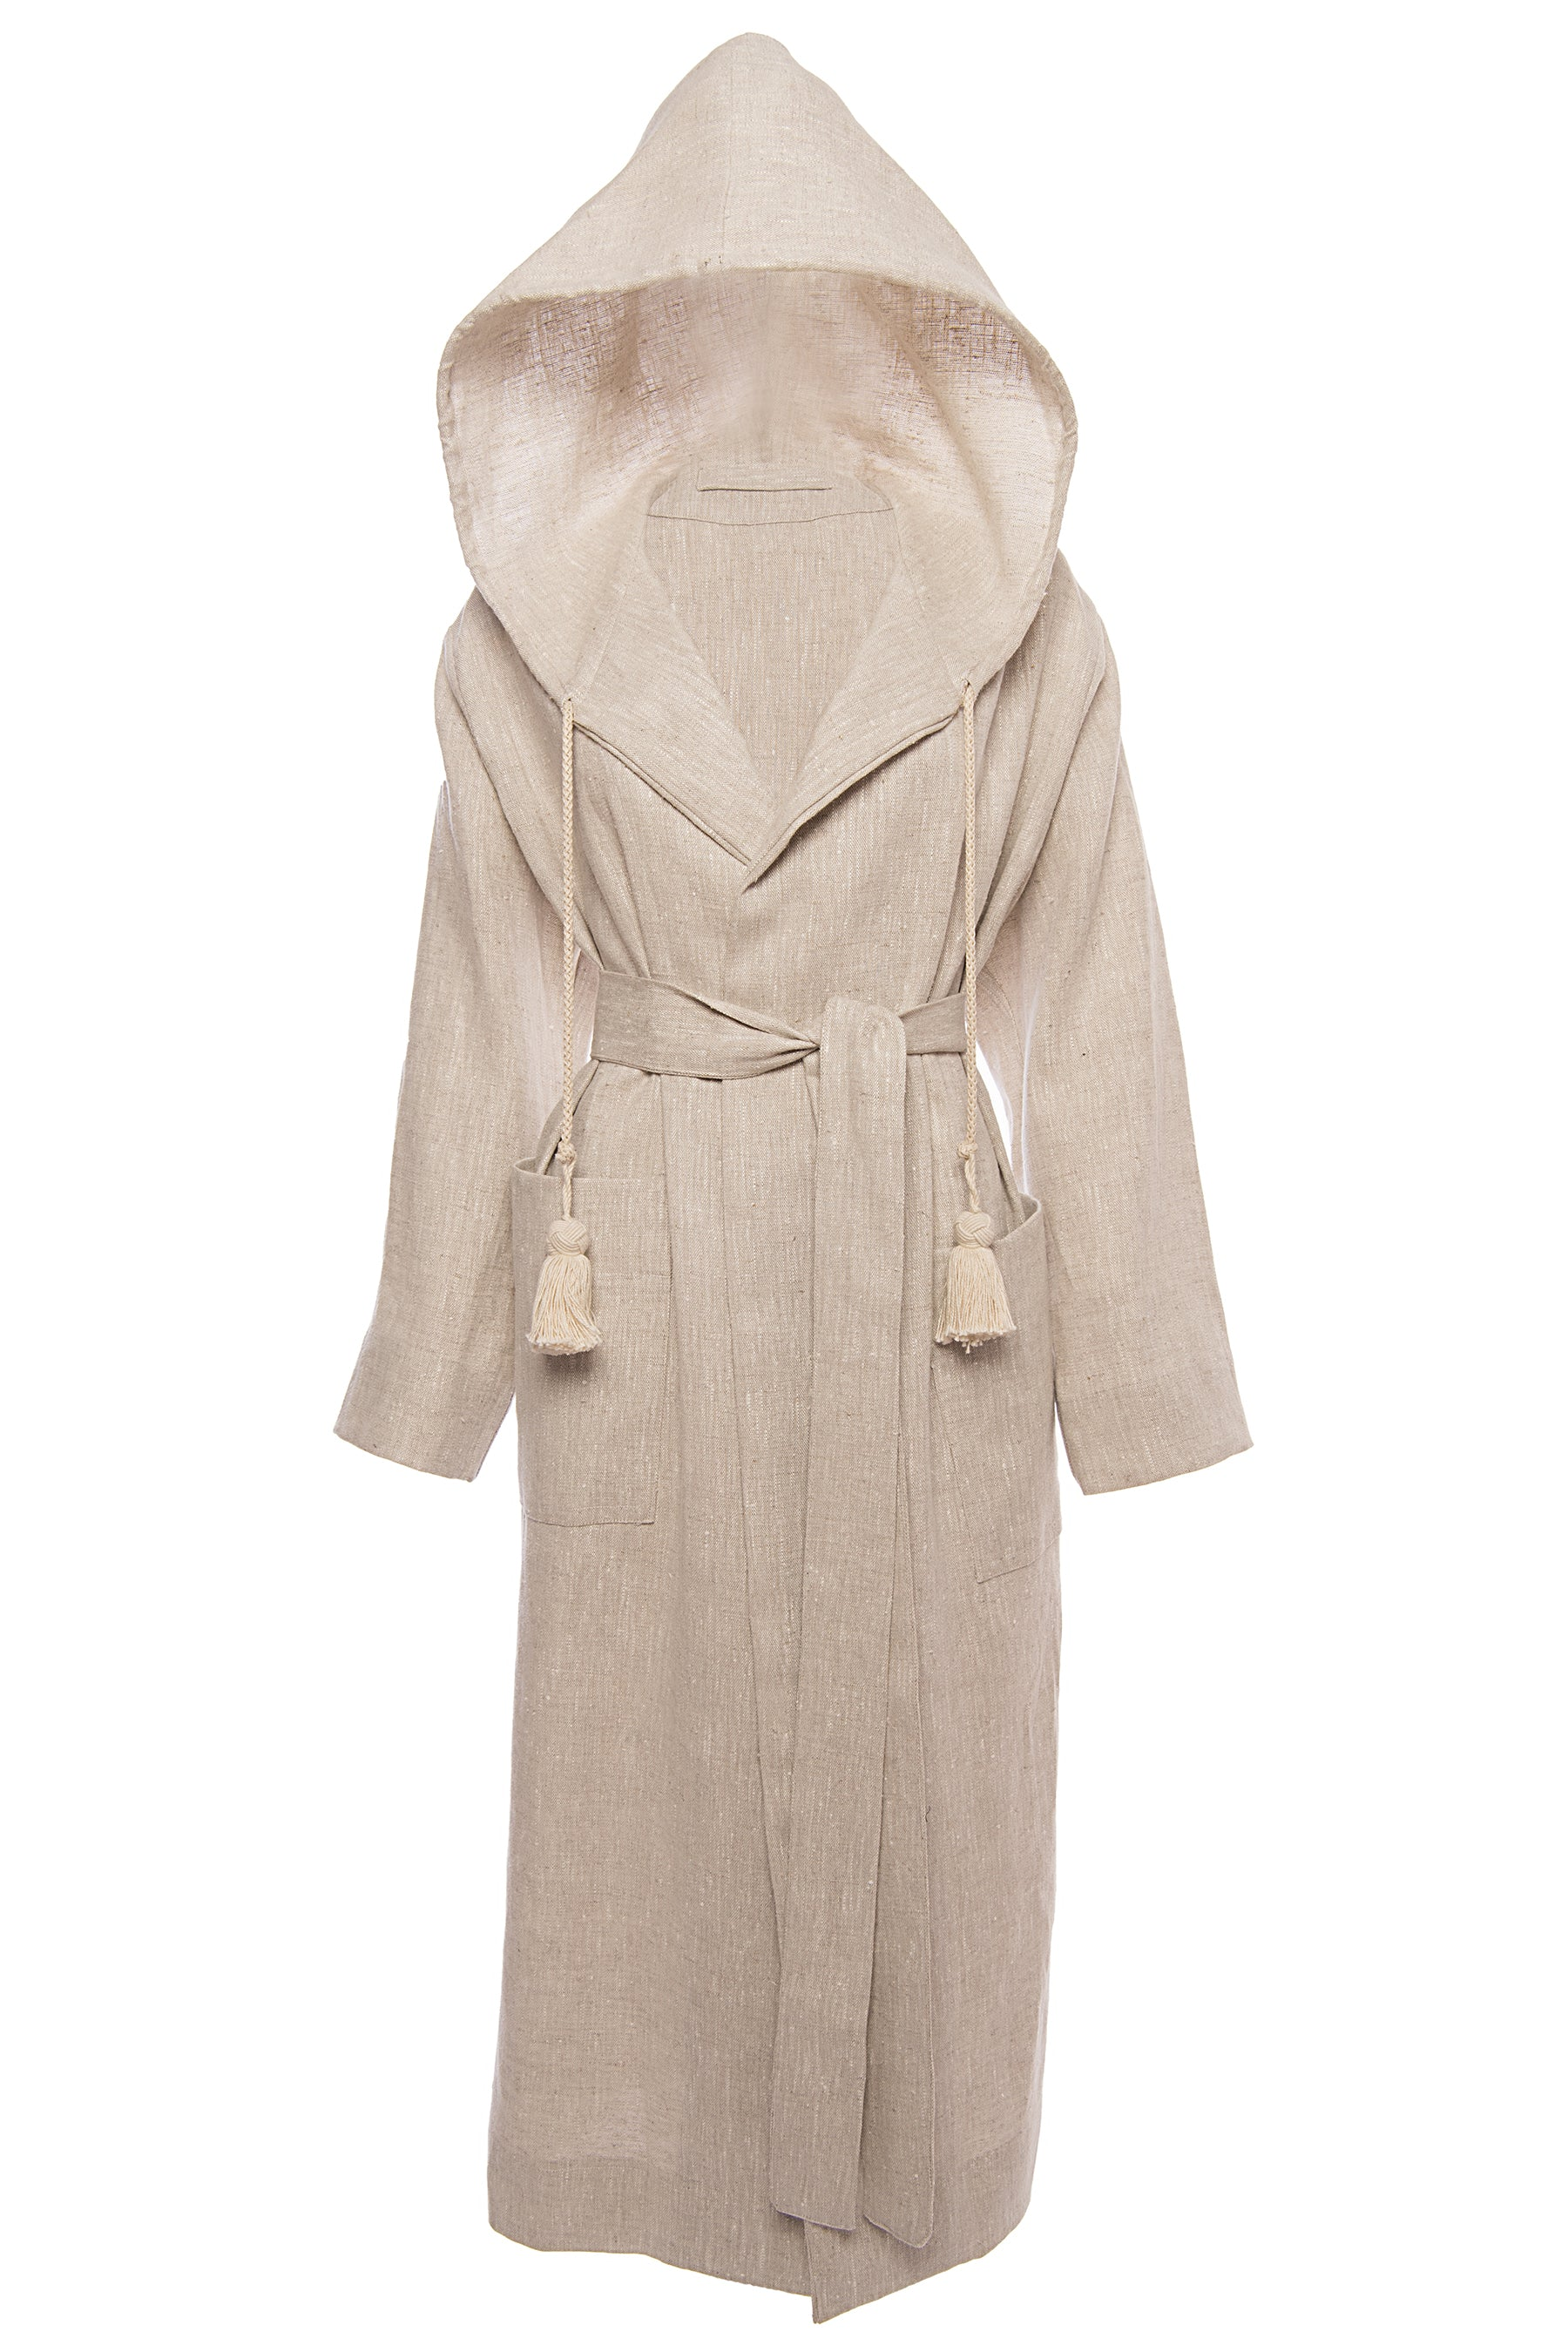 St. Tropez Hooded Robe - Whitney Linen